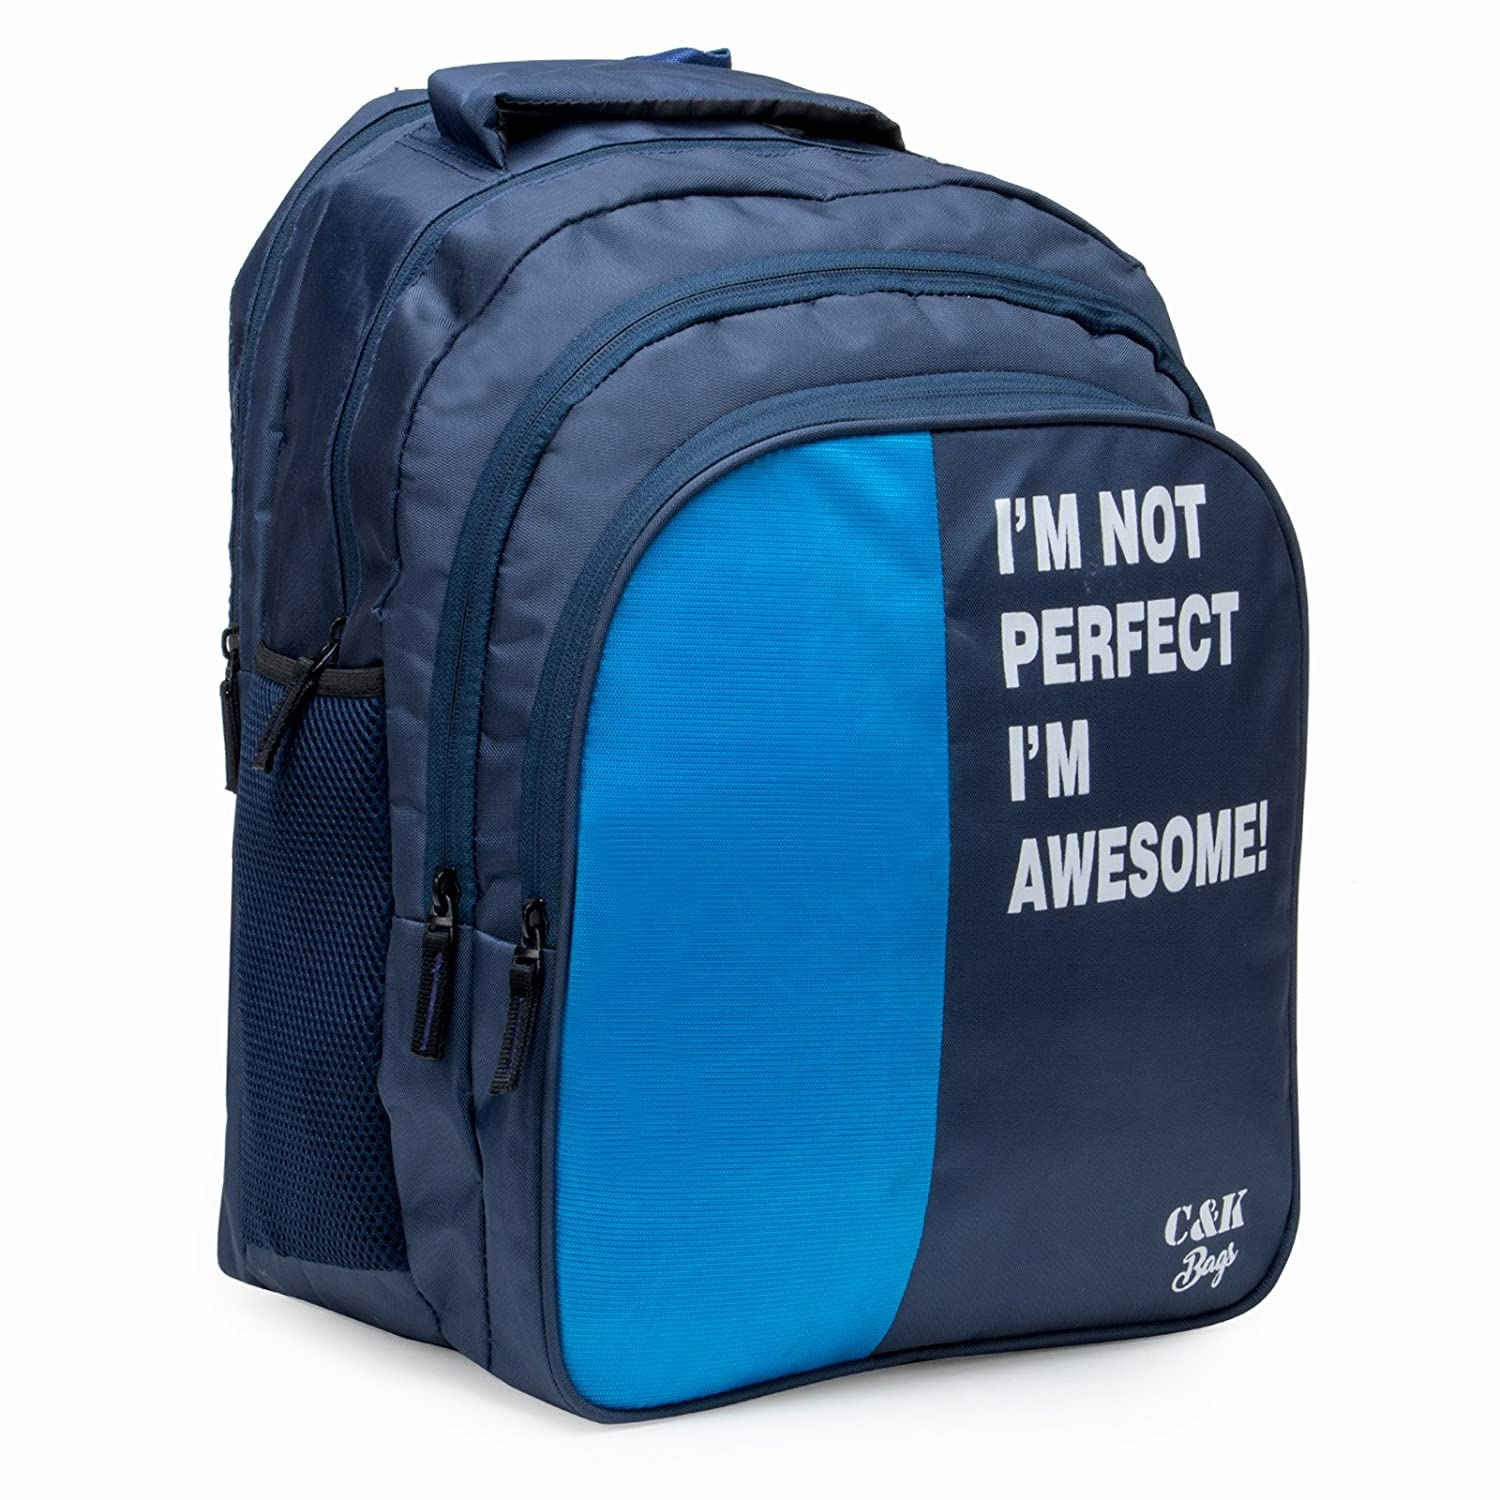 Chris & Kate Big 42 litres Comfortable Blue Casual Laptop Bag || Colle